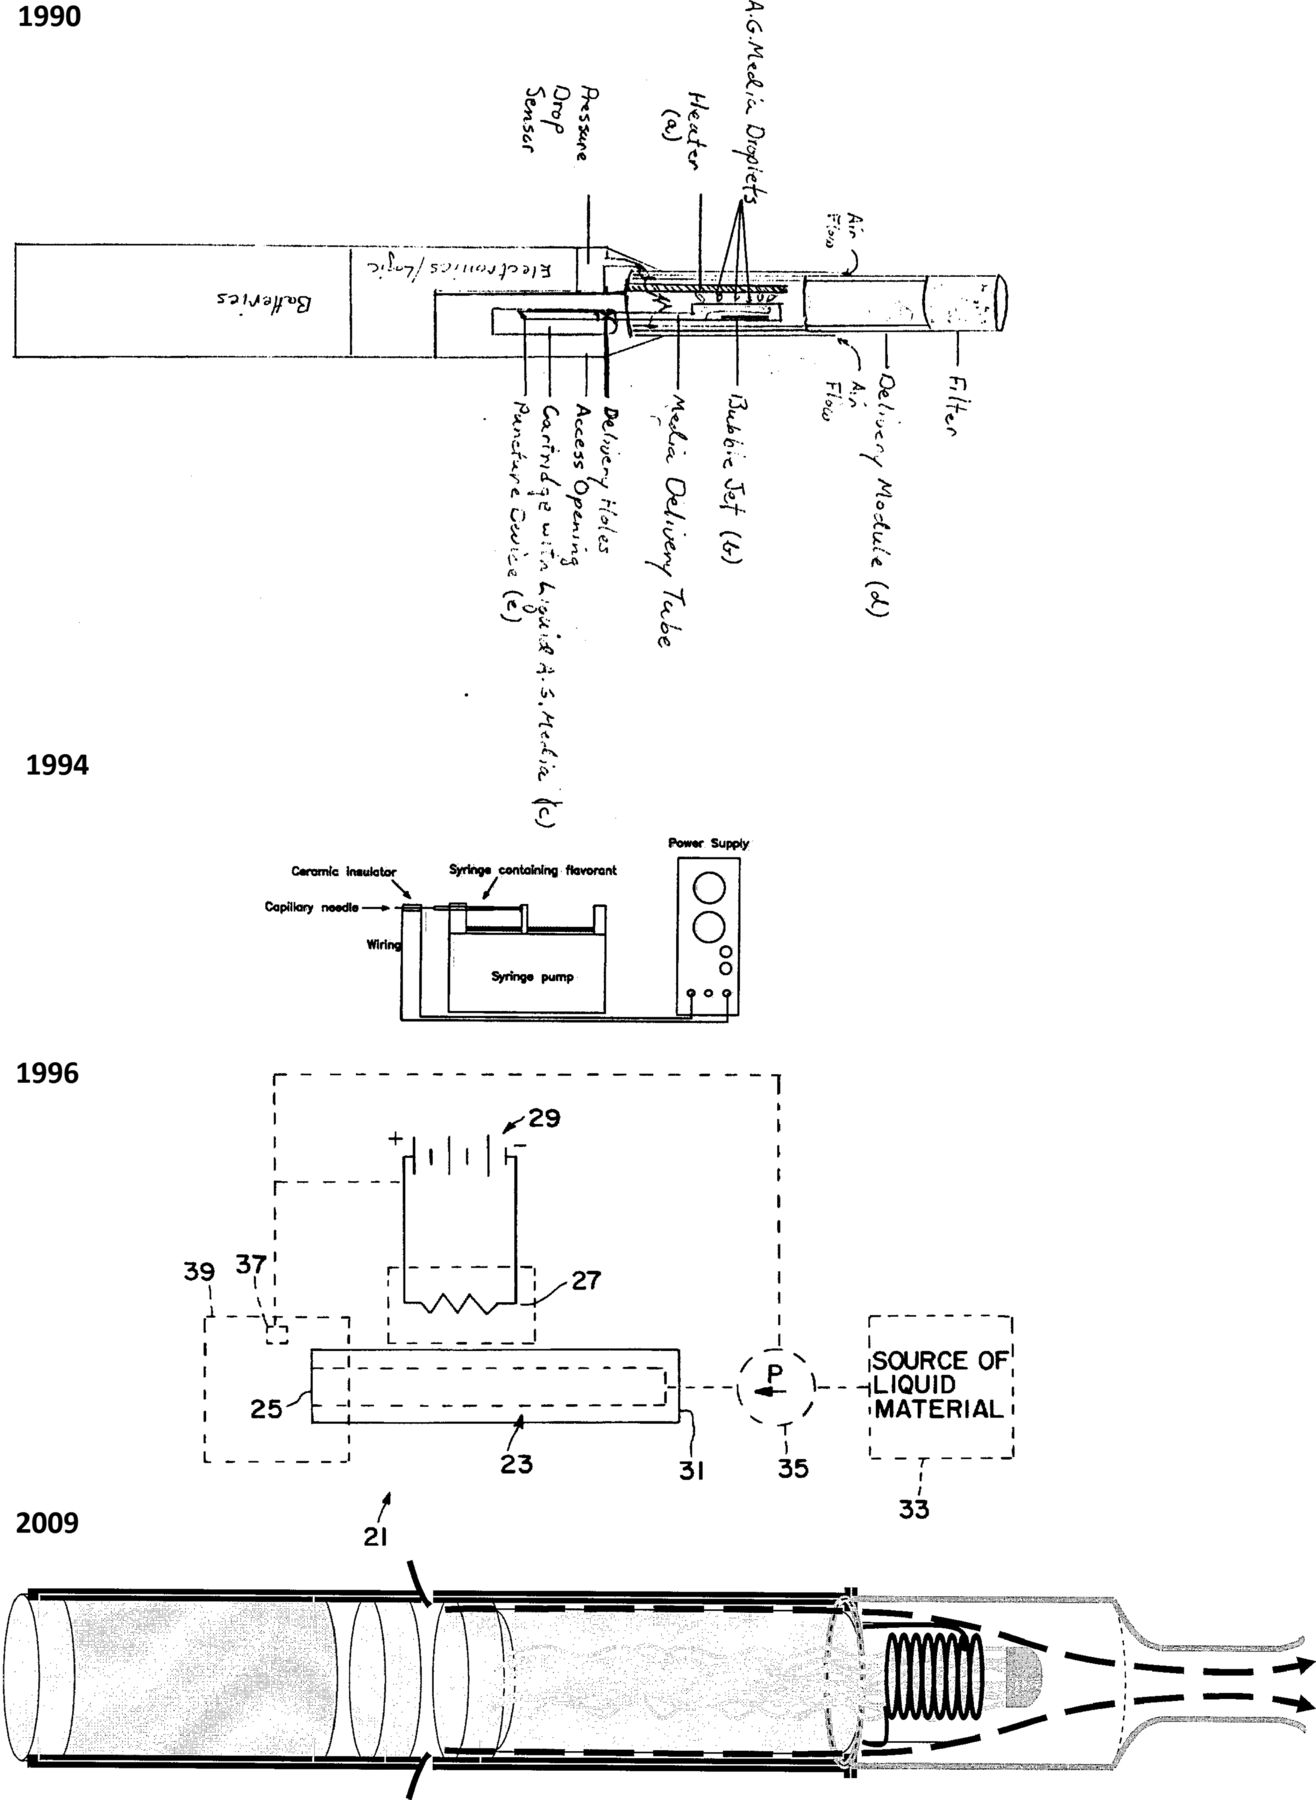 Philip Morris Research On Precursors To The Modern E Cigarette Since 50w Ultrasonic Piezoelectric Ceramic Transducer For Humidifier Circuit Download Figure